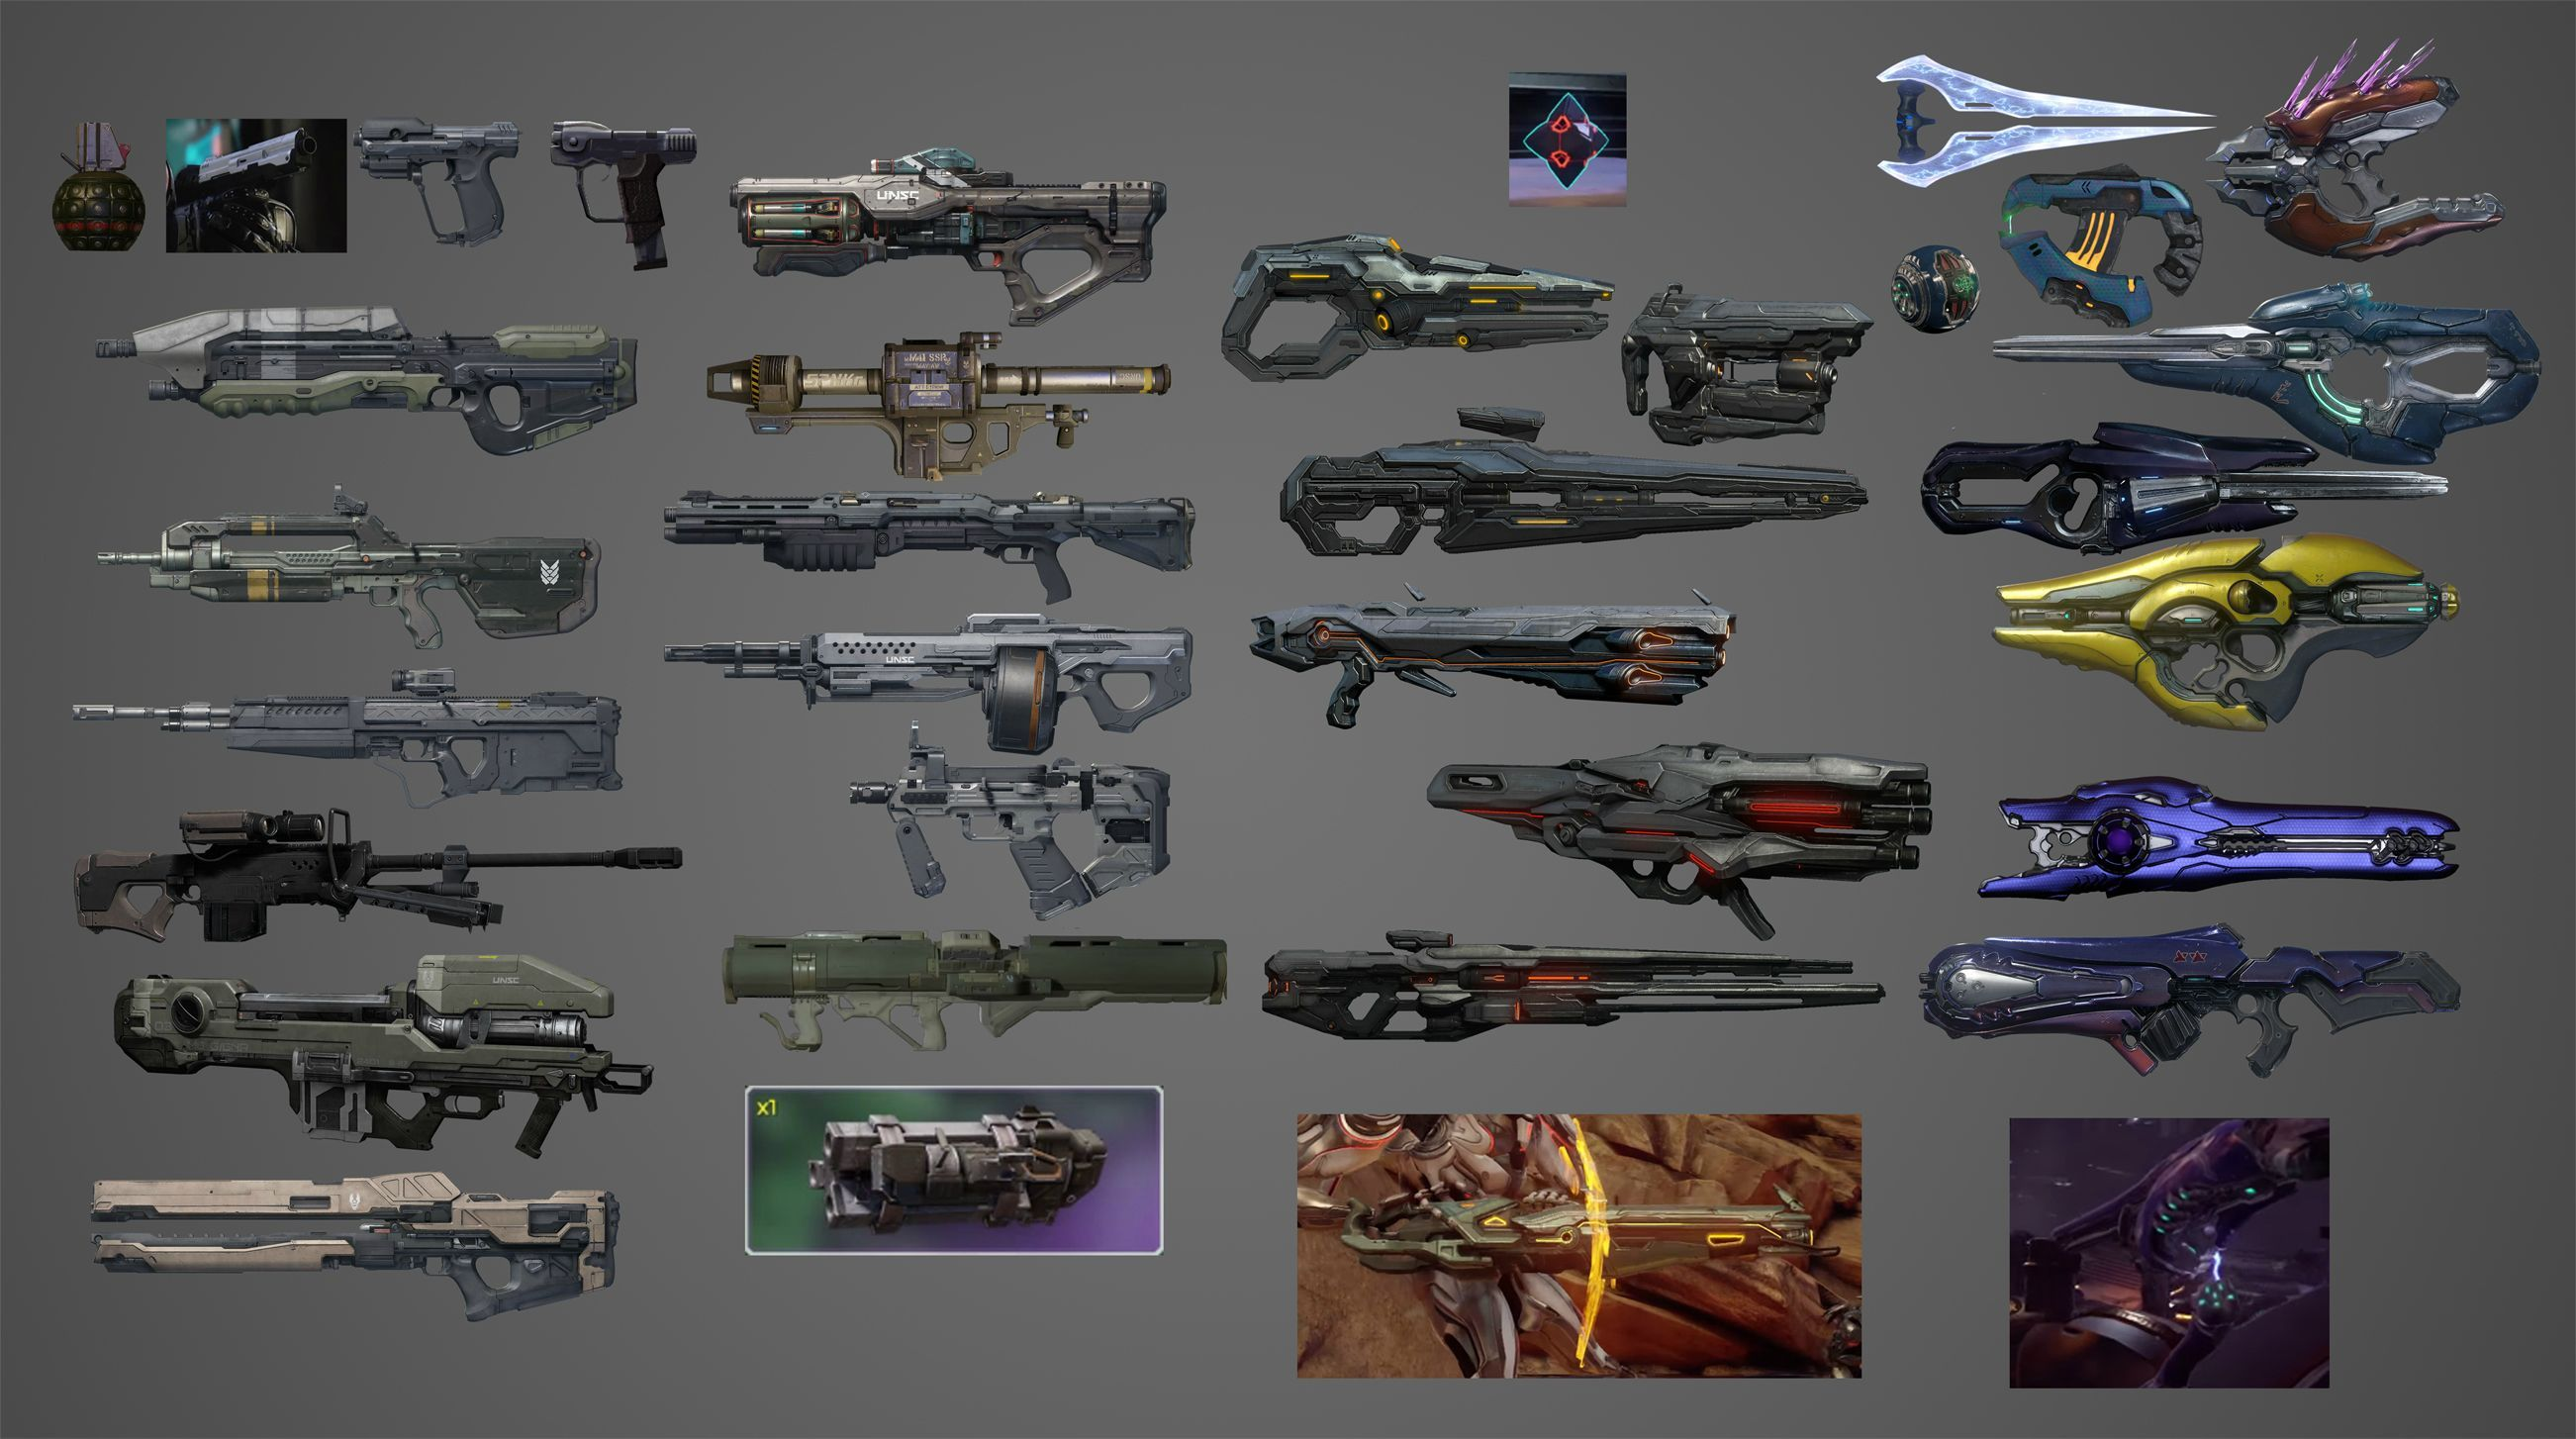 all halo 5 weapons - Google Search | reliquary | Pinterest ...